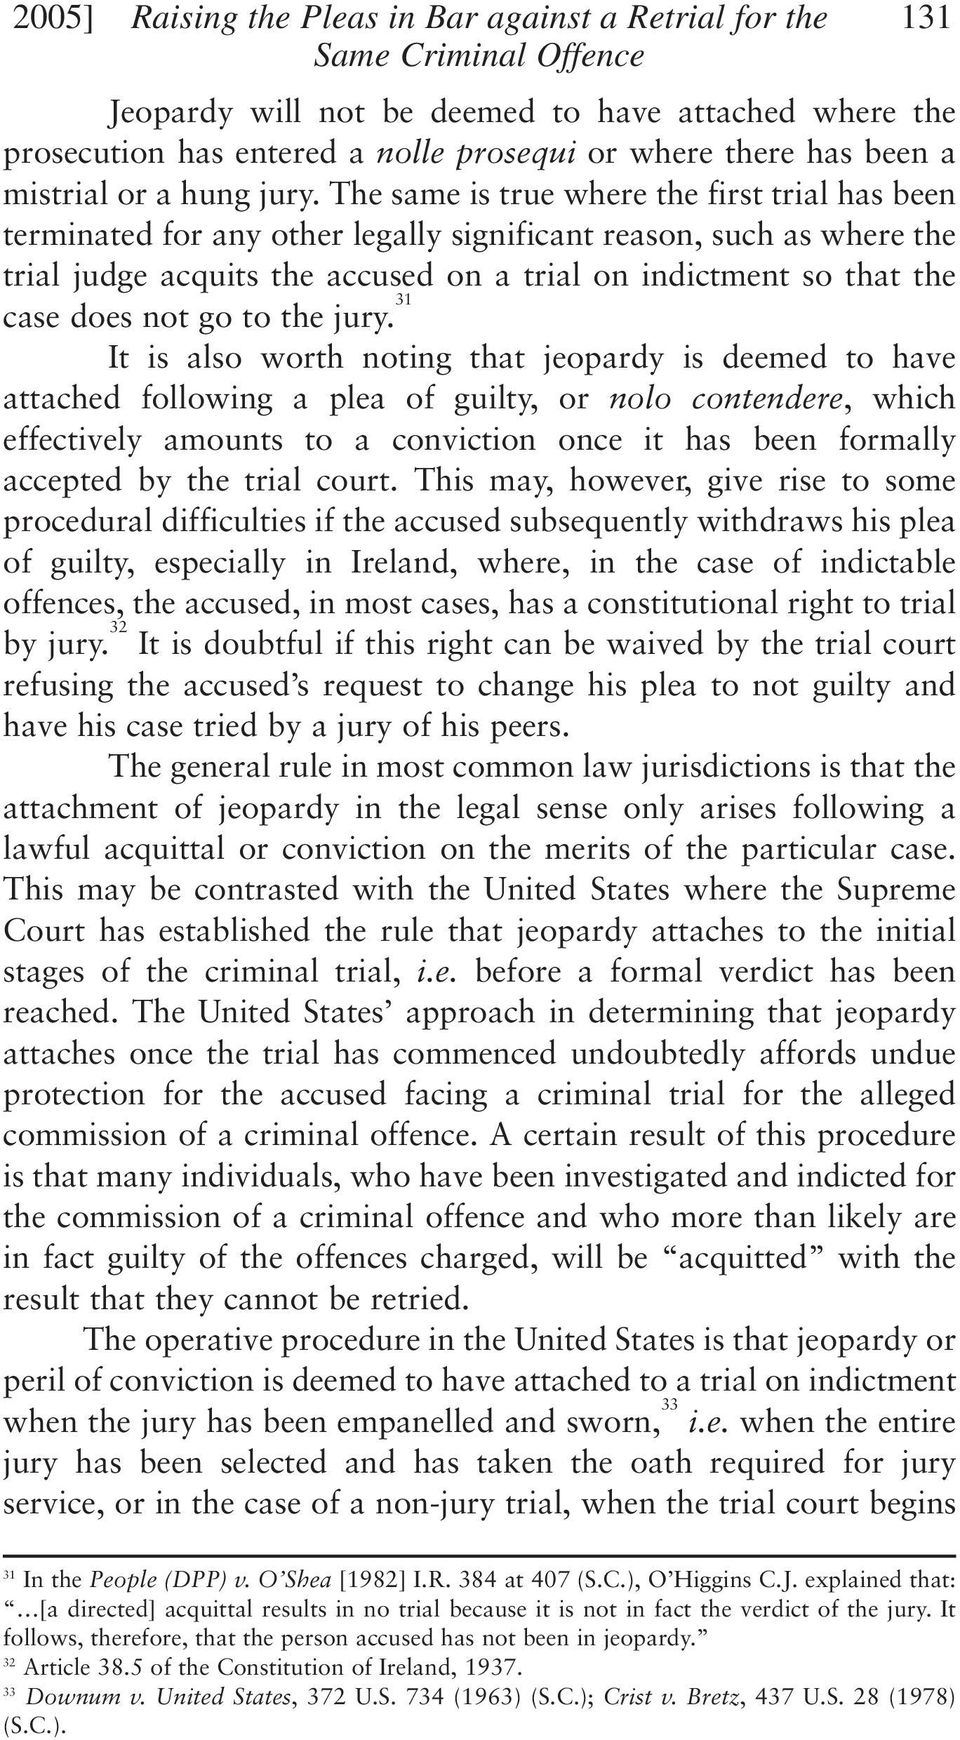 The same is true where the first trial has been terminated for any other legally significant reason, such as where the trial judge acquits the accused on a trial on indictment so that the case does